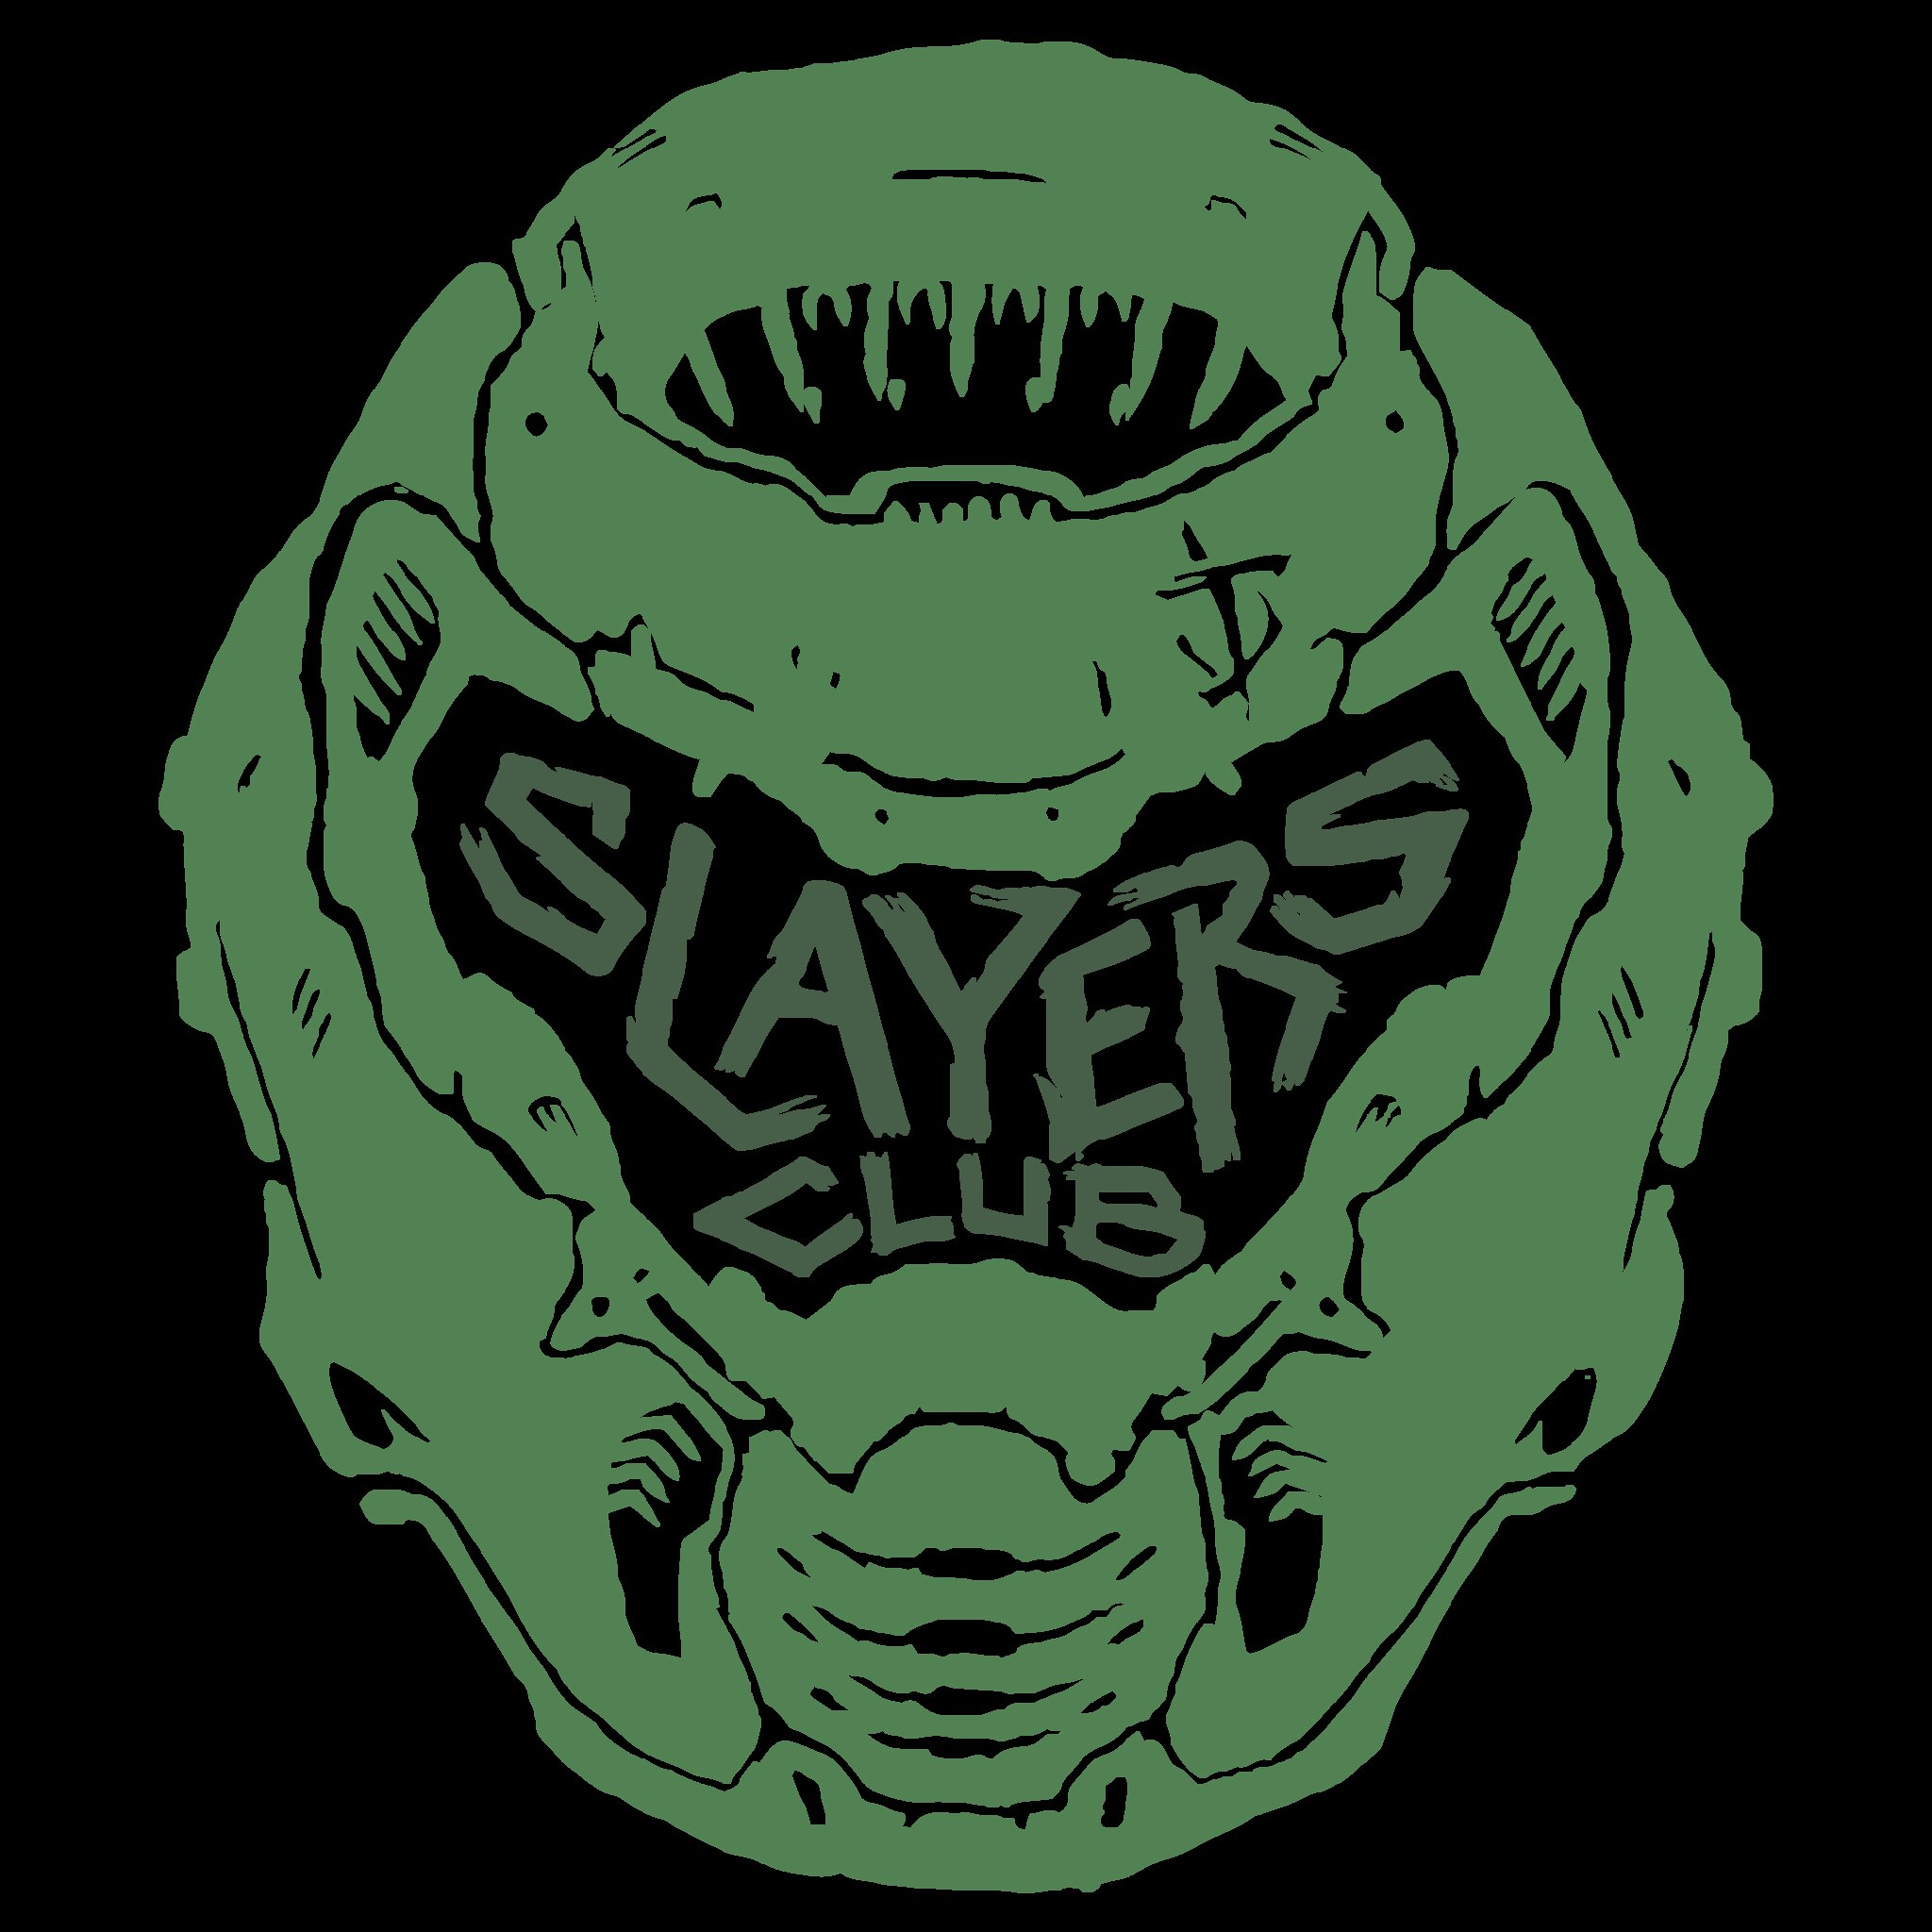 Slayers Club logo